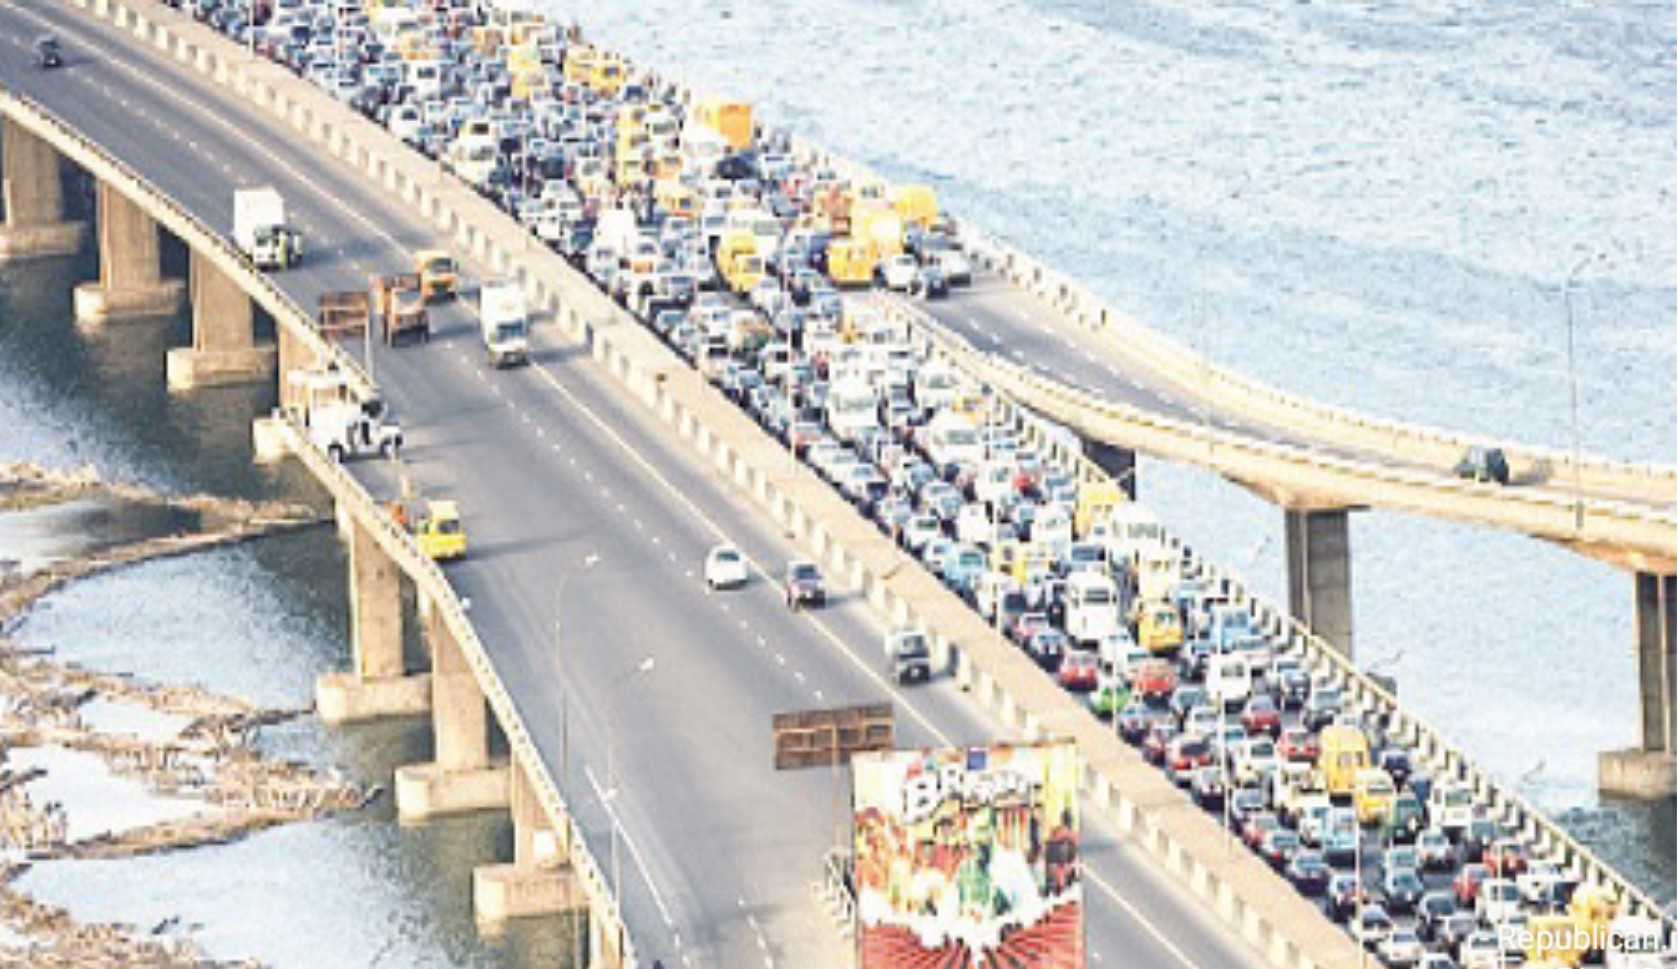 FG to resume Third Mainland Bridge repairs